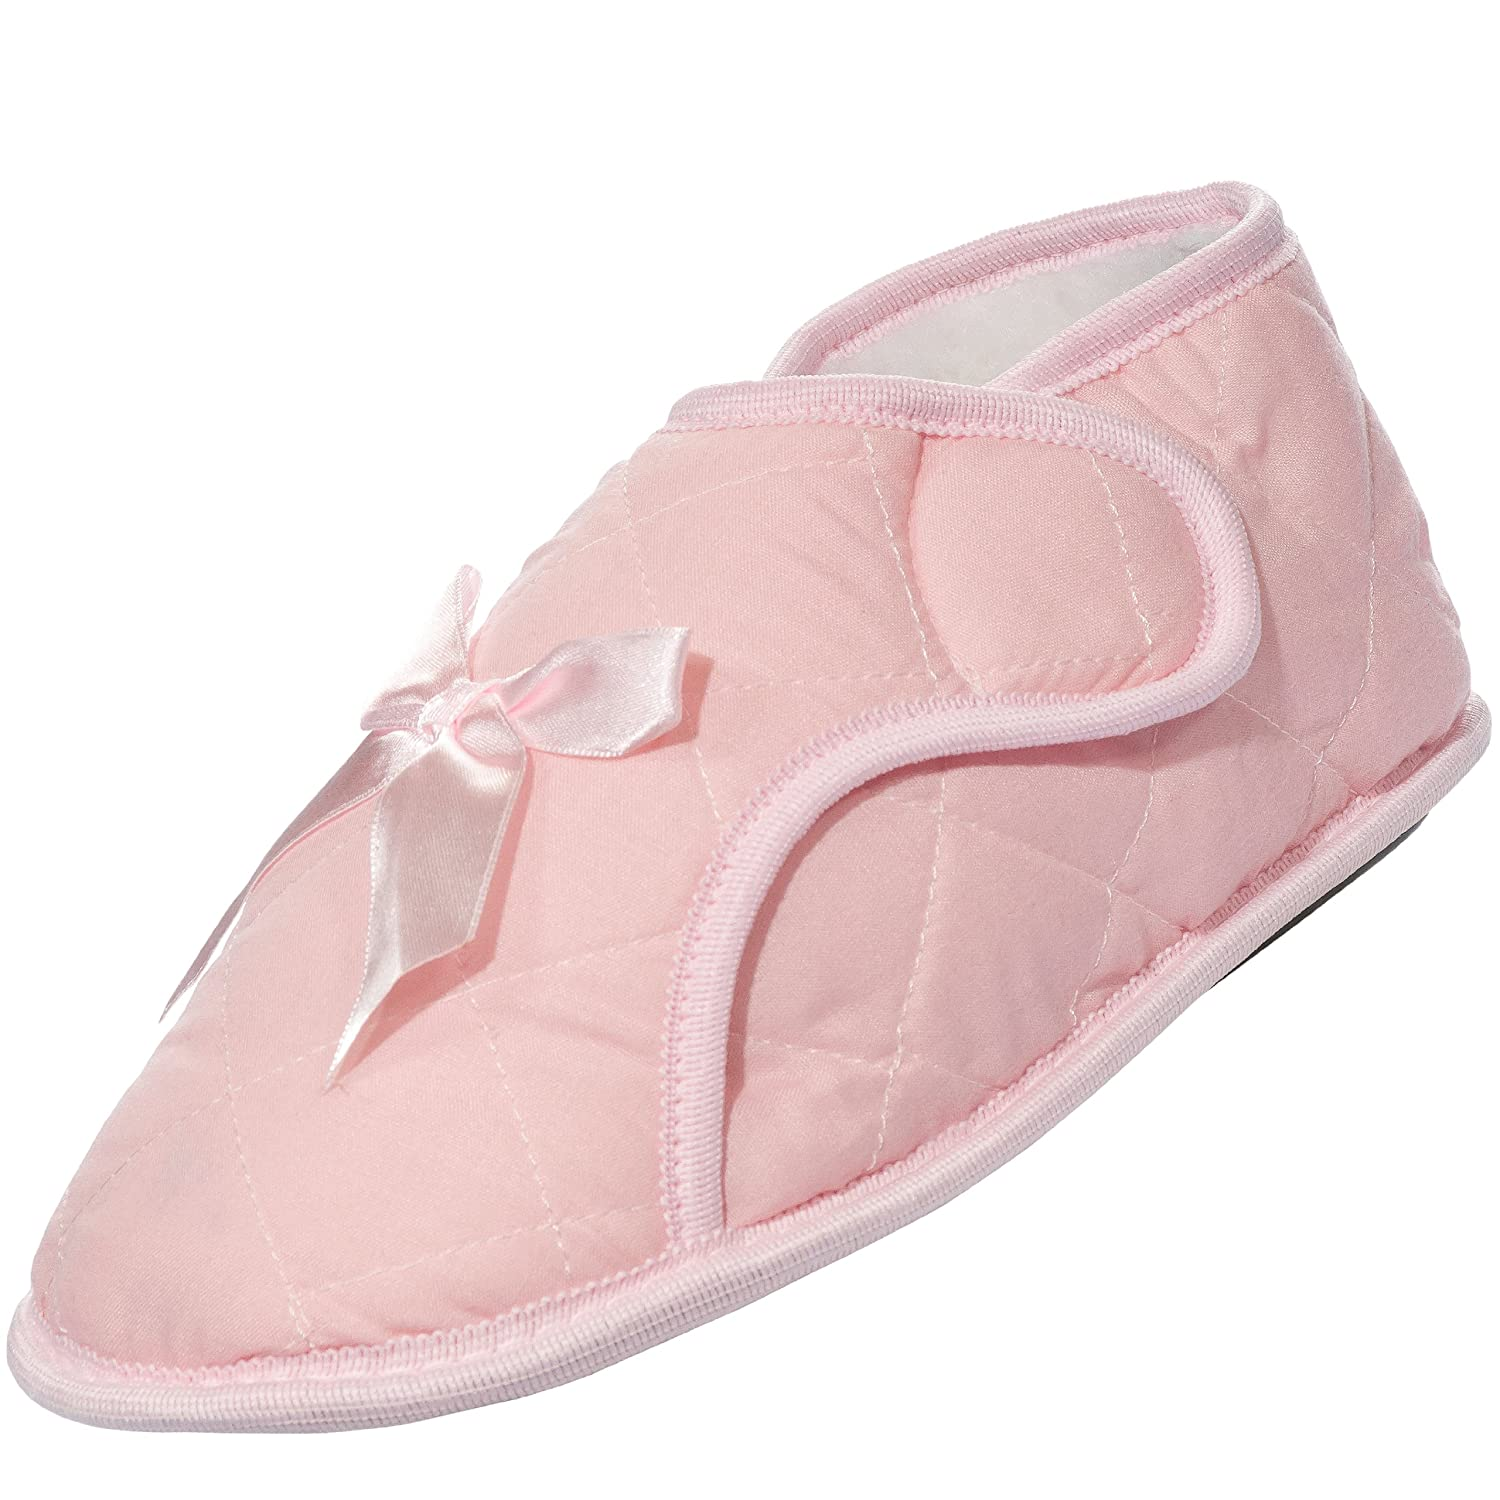 Womens Edema Bootie Slipper for Swollen Feet - Light Pink